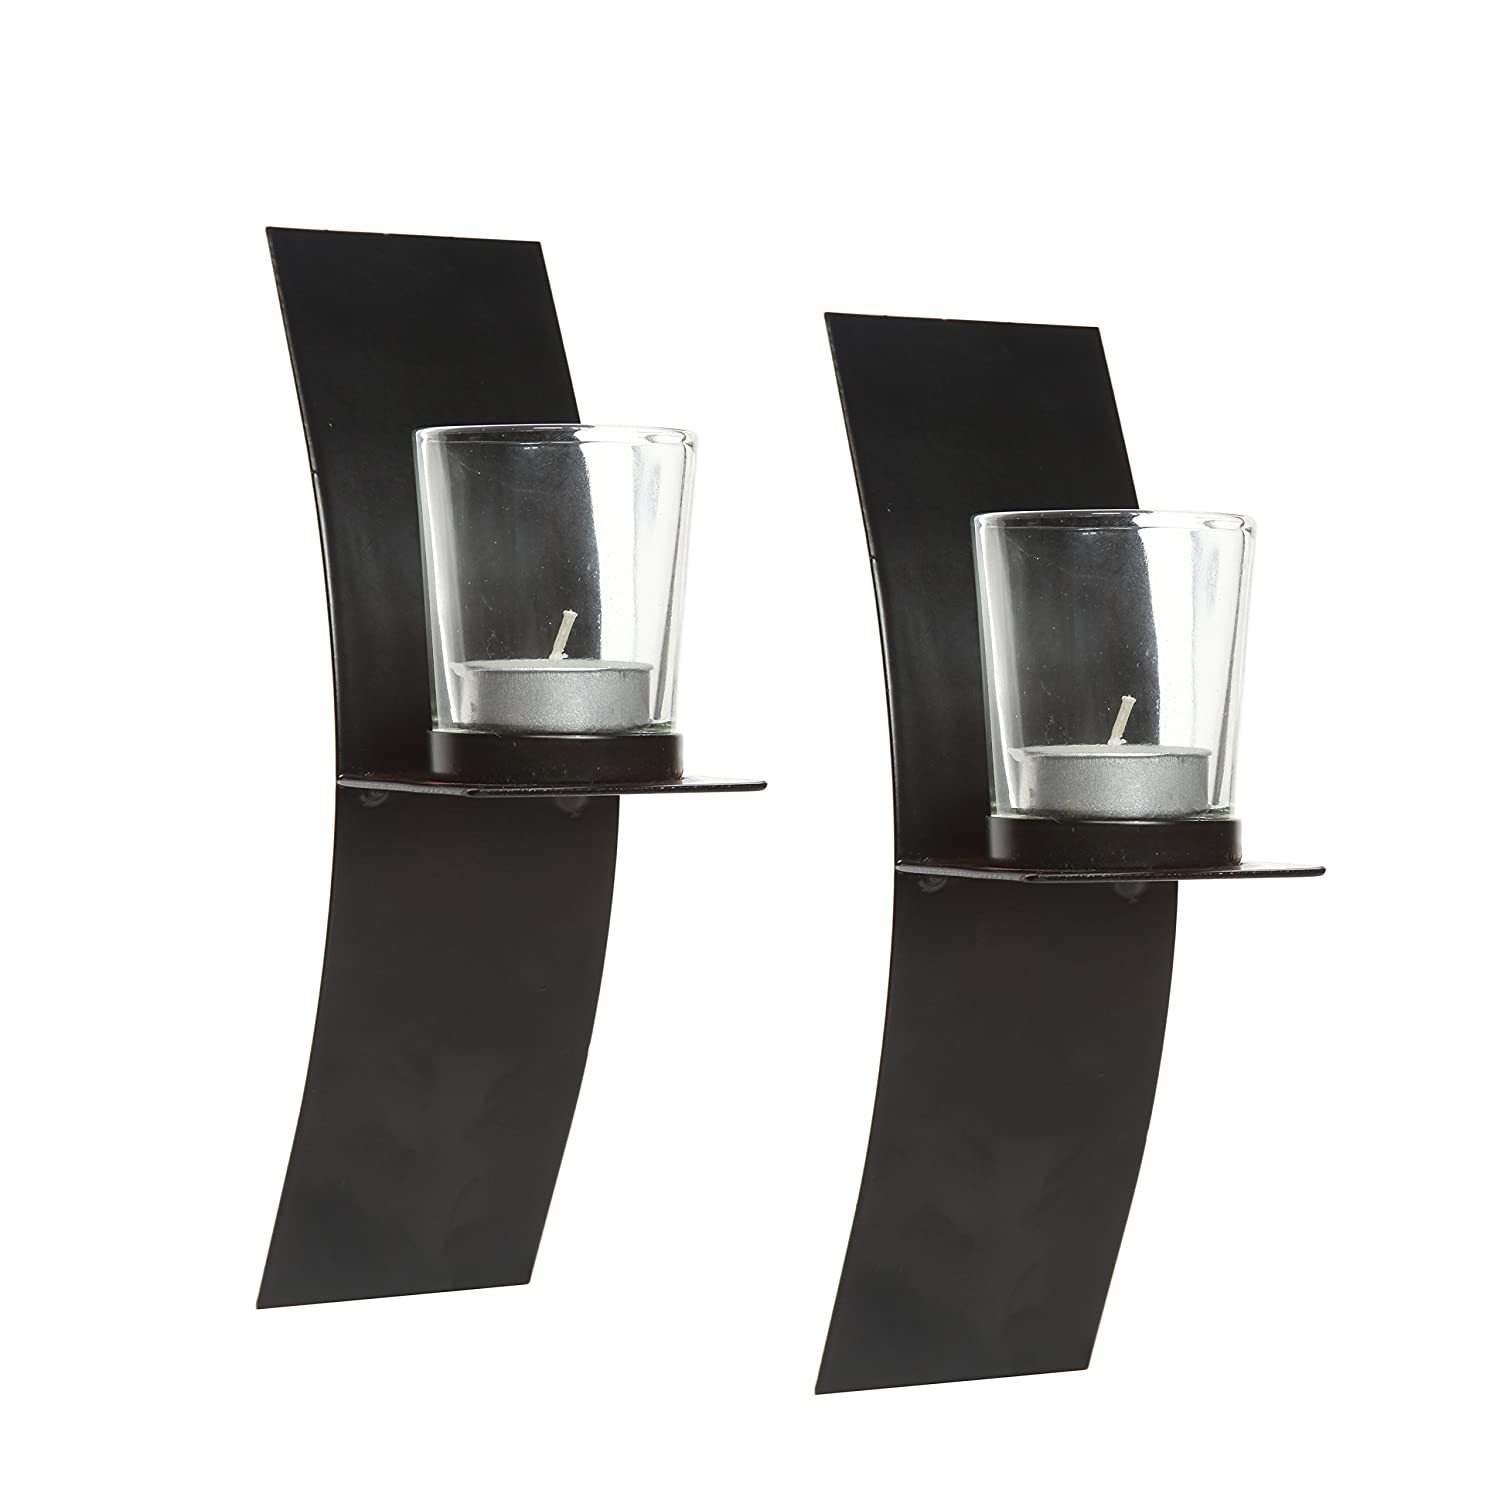 Hosley's Set of 2, Modern Art Large Wall Sconces with Clear Glass Votive Candle holders-9